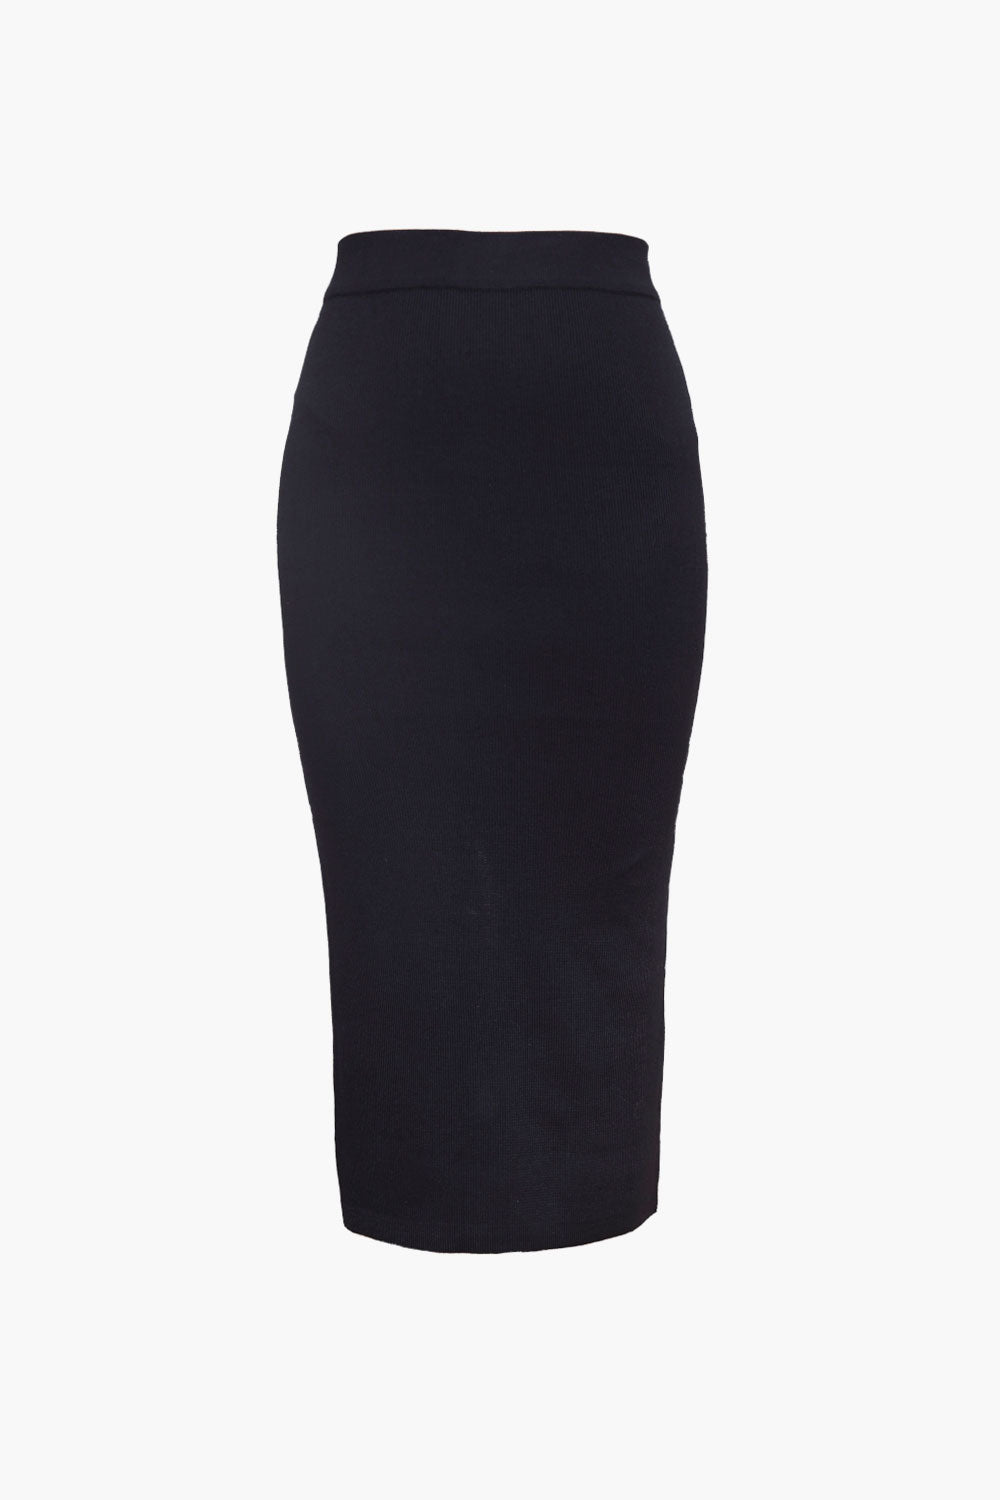 Stretch Knit Pencil Skirt